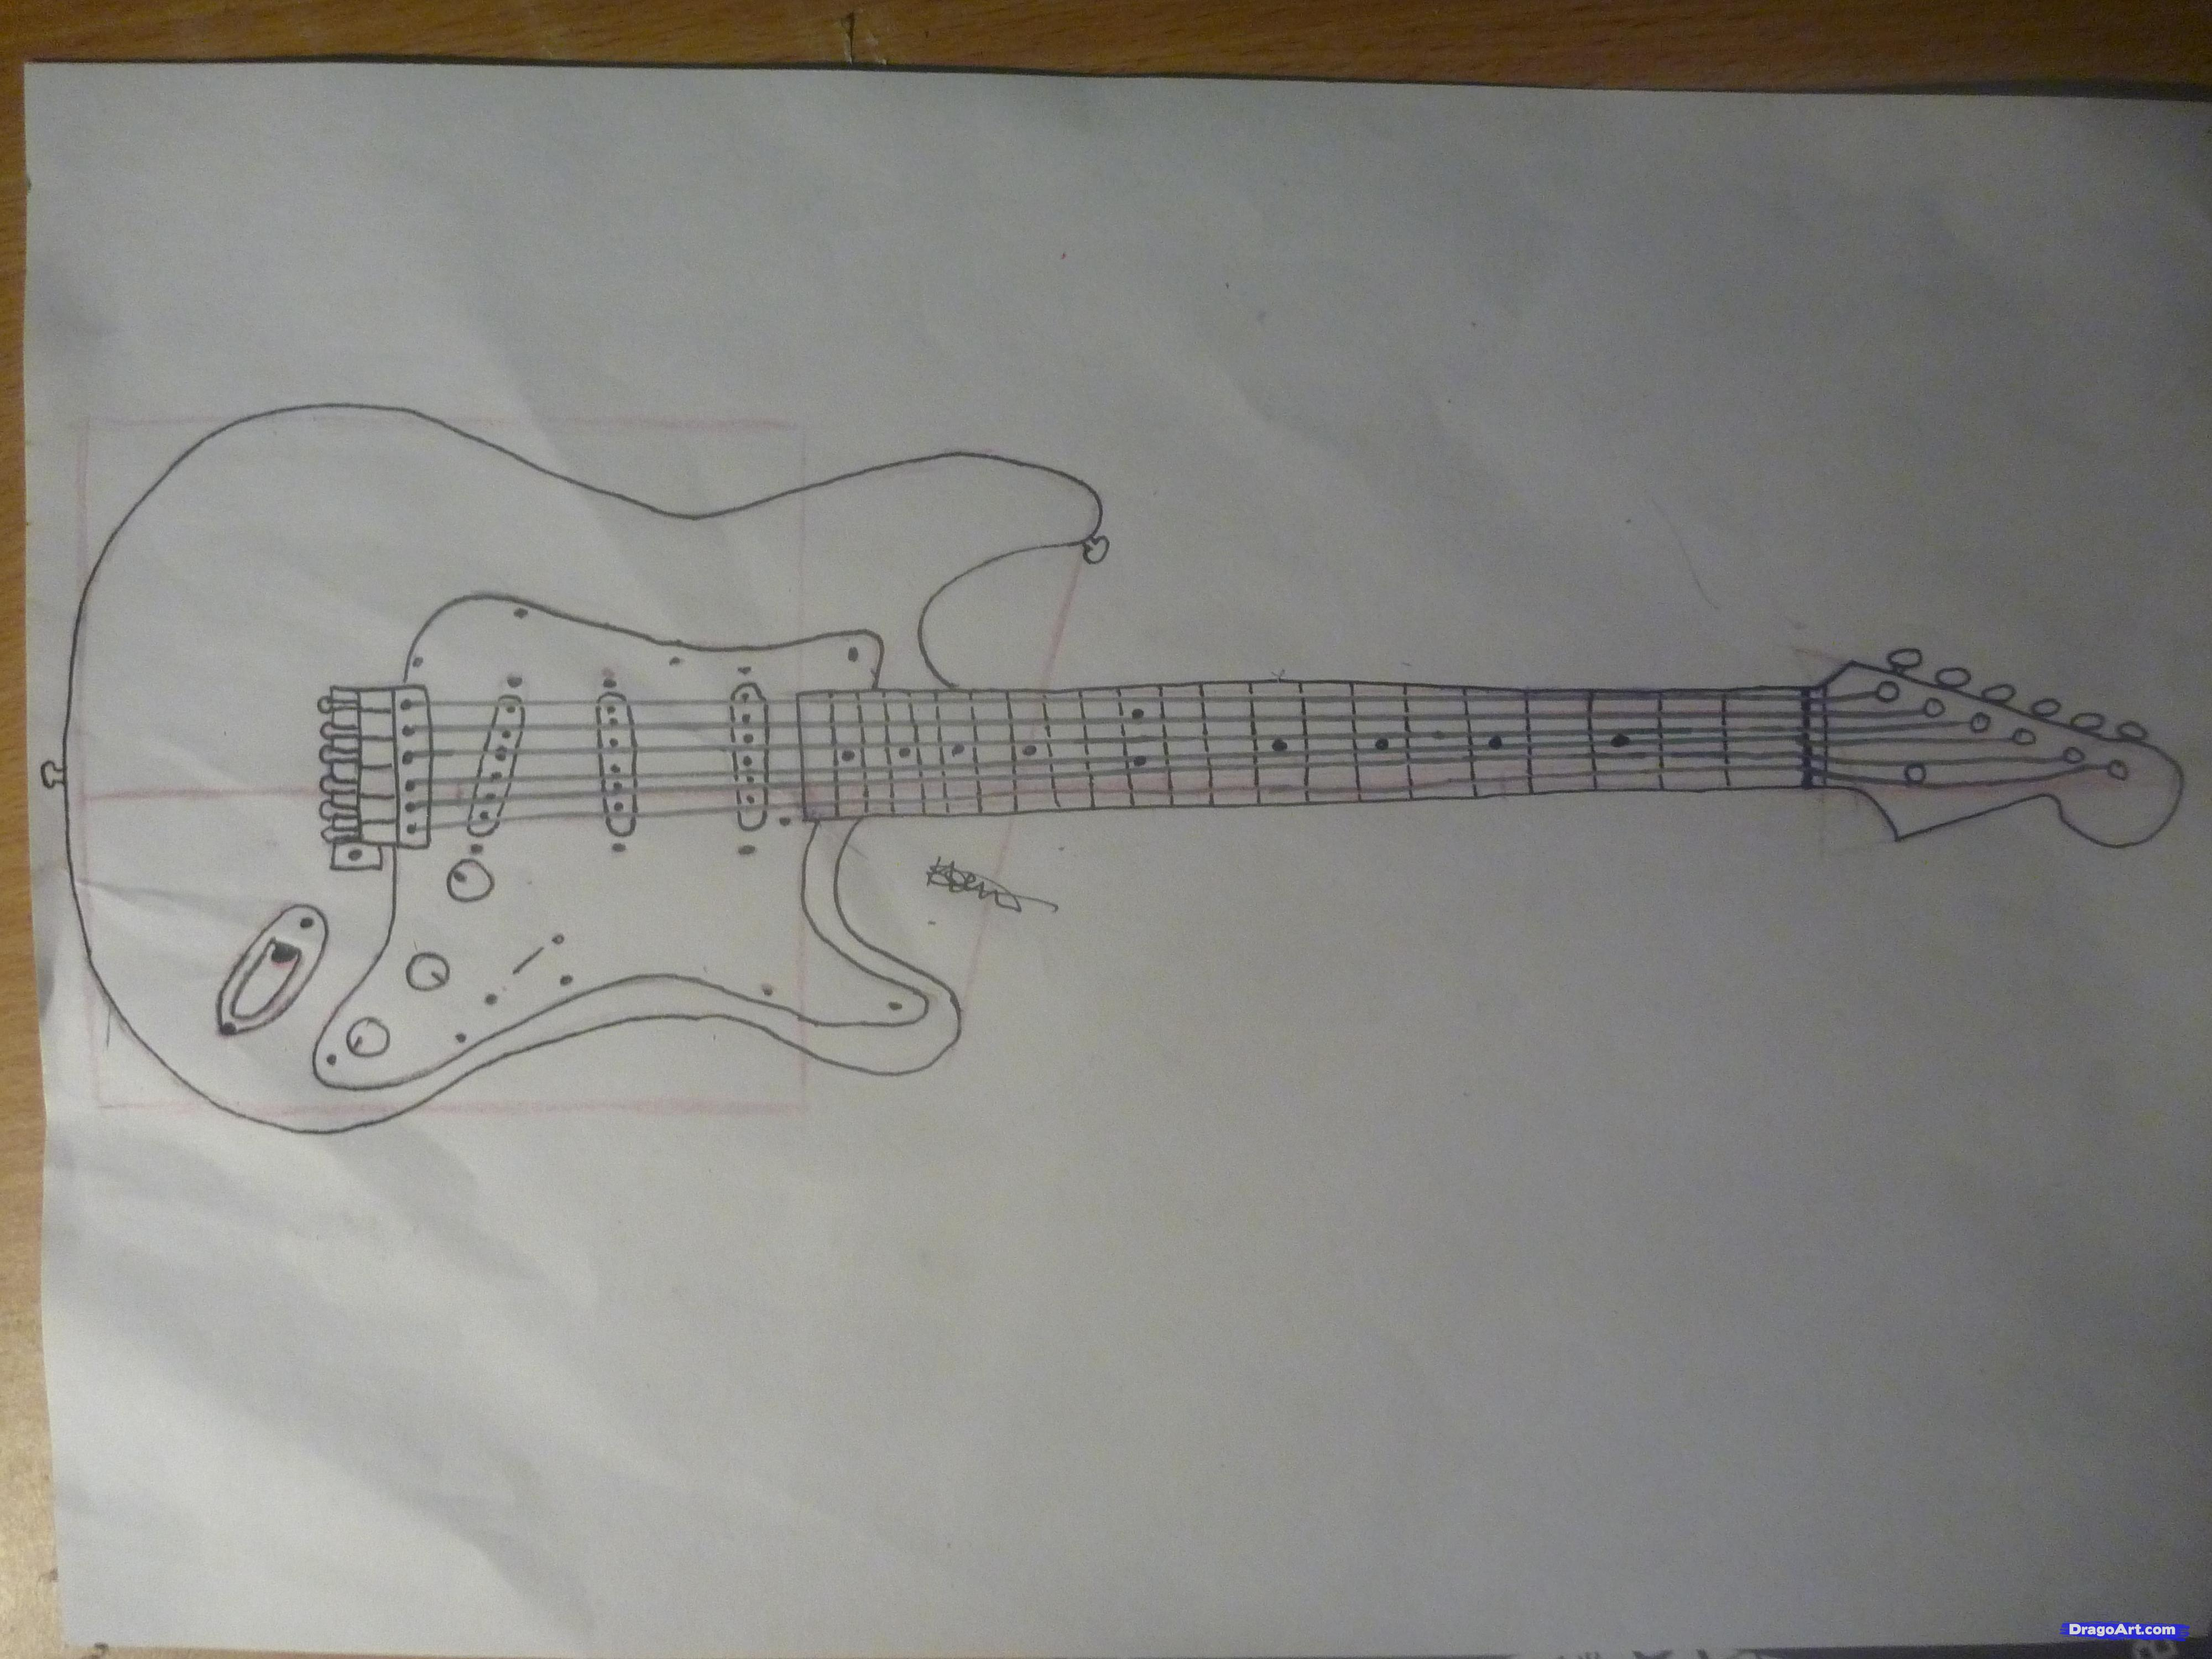 Drawn musician pencil drawing By electric to How String